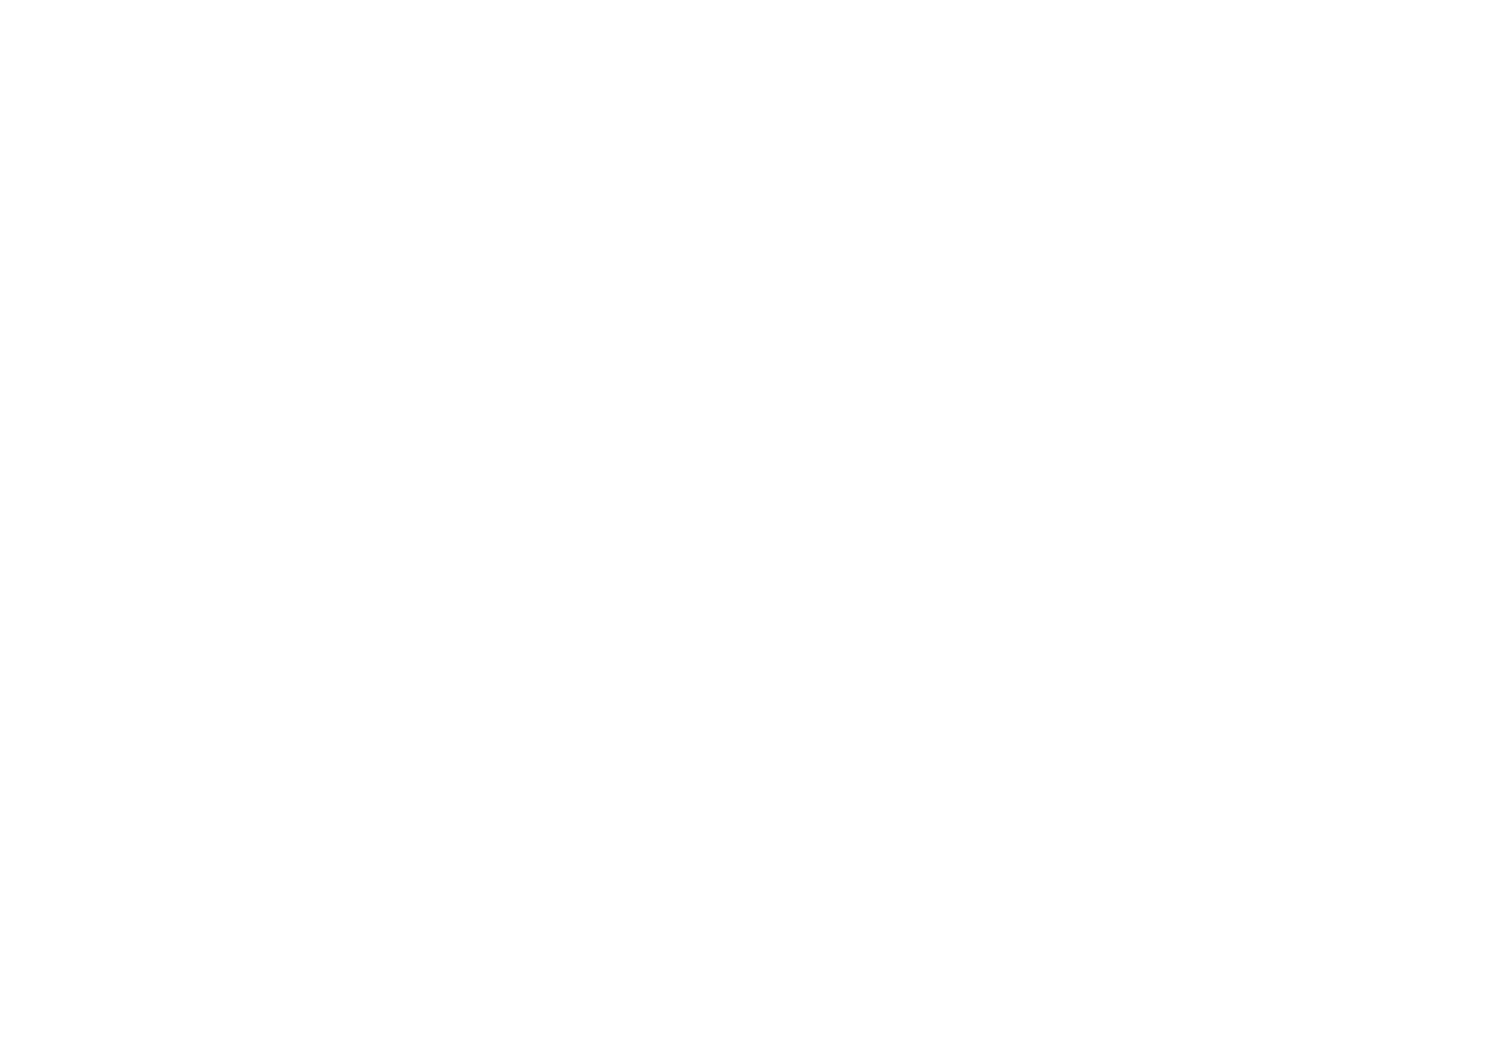 The Beaufort and Ike's